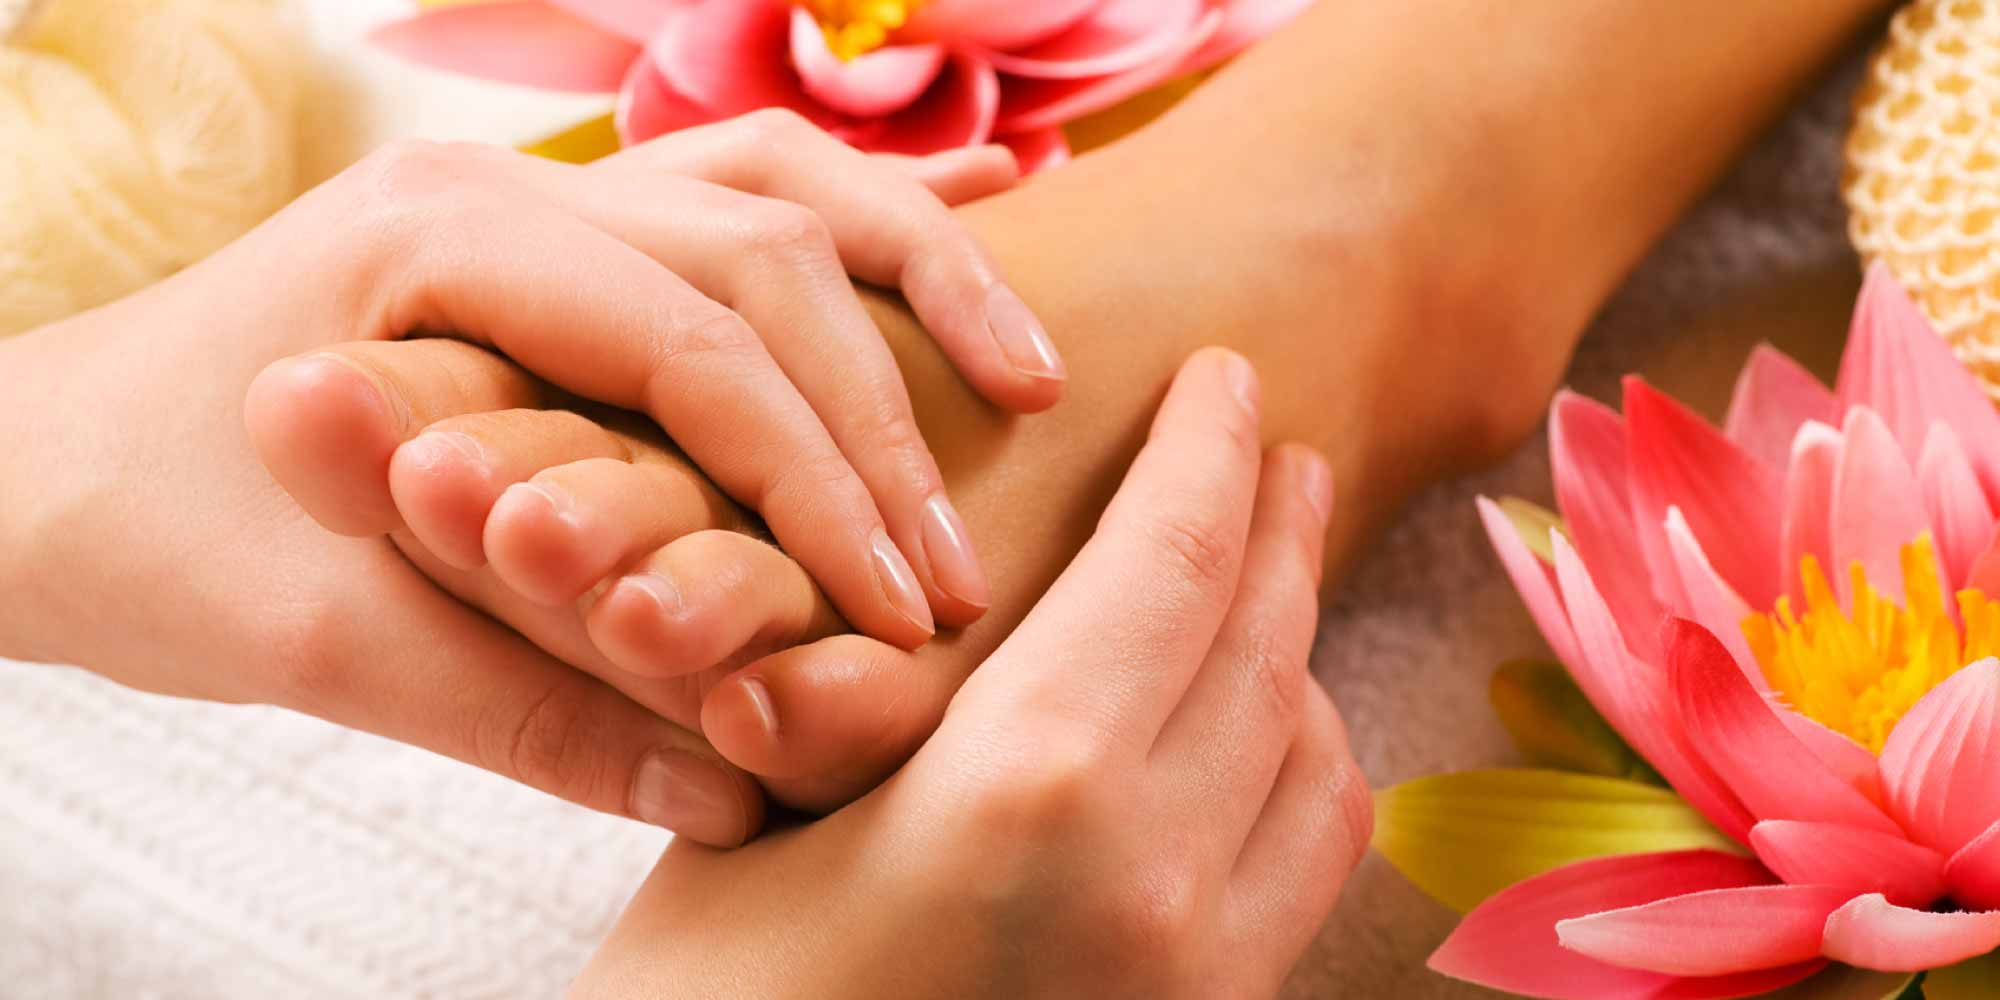 beauty treatments reflexology image